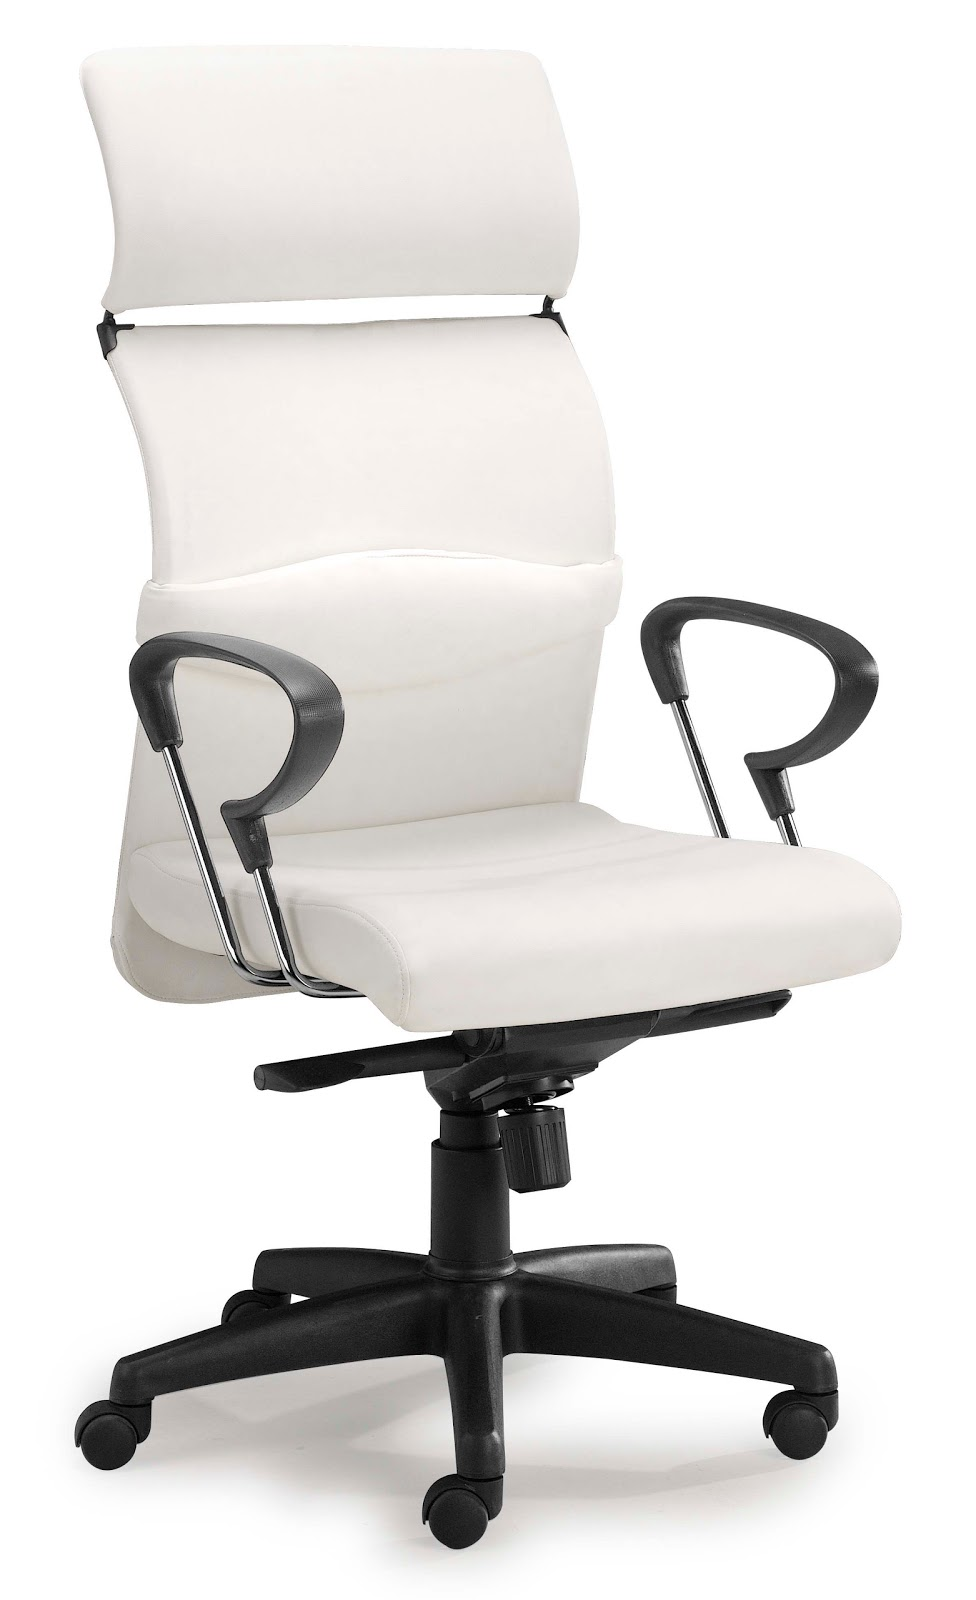 Eco Home: Zuo Modern Eco Office Chair Review